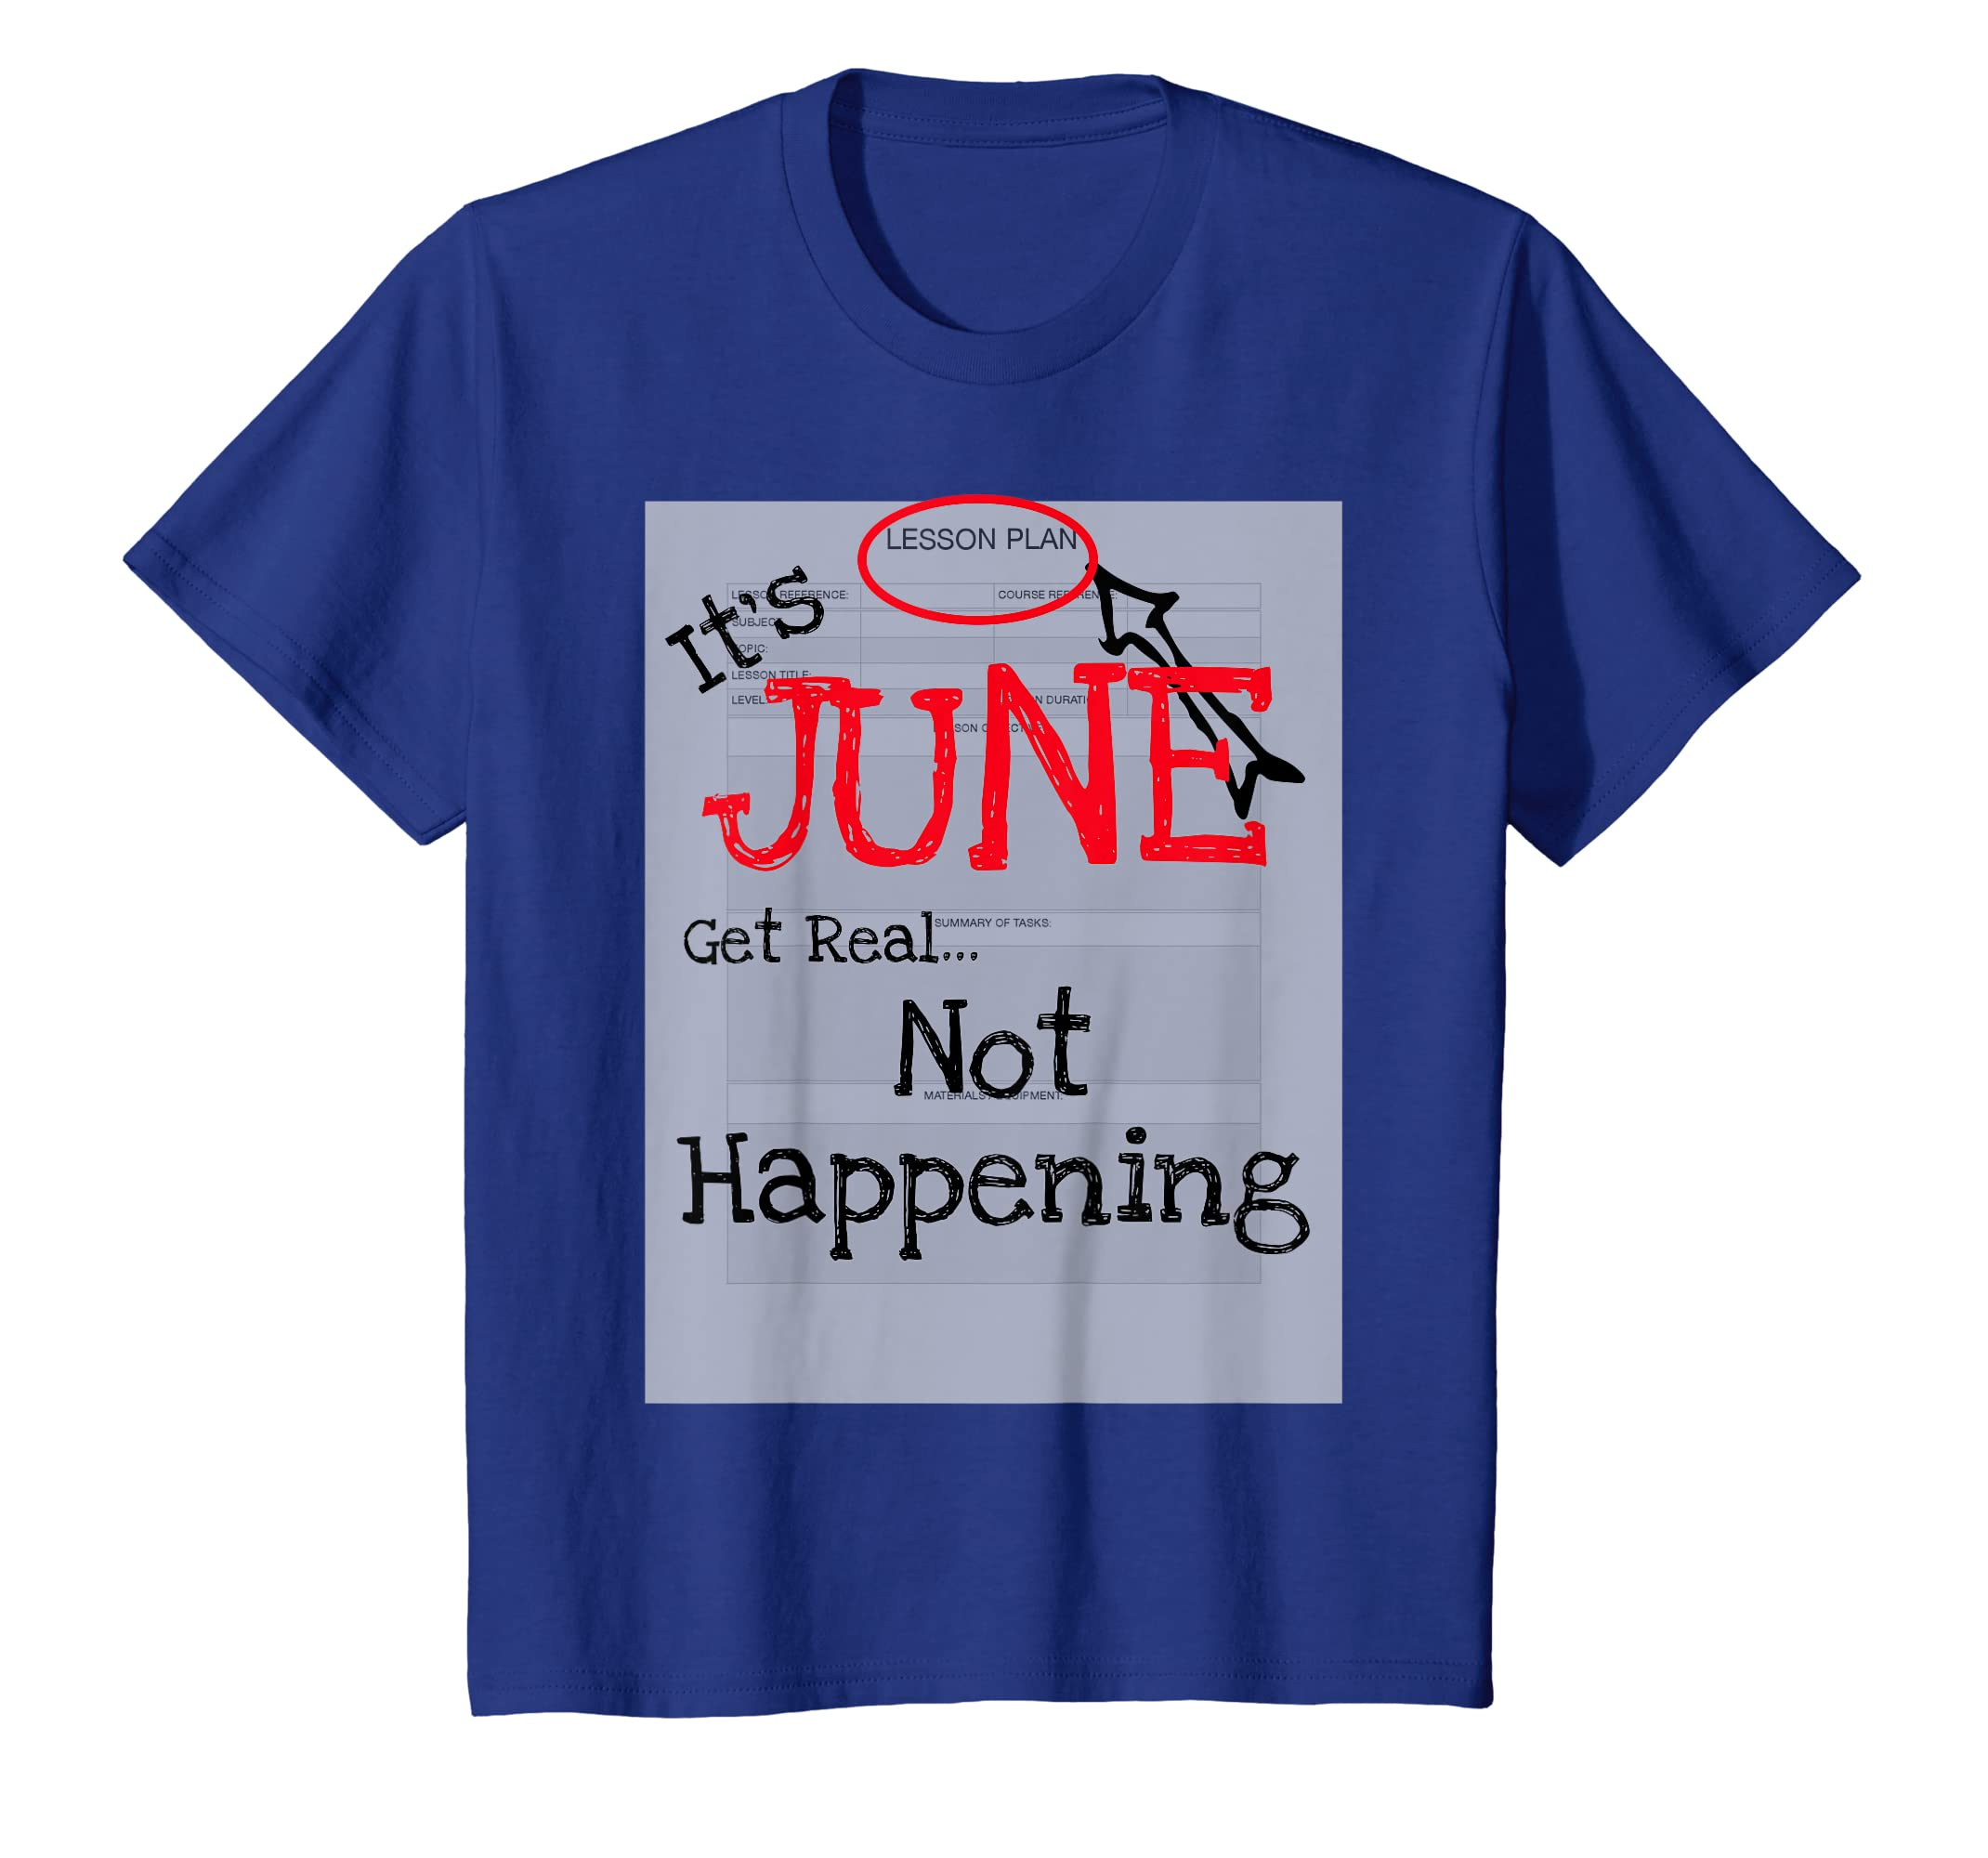 Amazon com: It's June, Get Real  Not Happening lesson plan